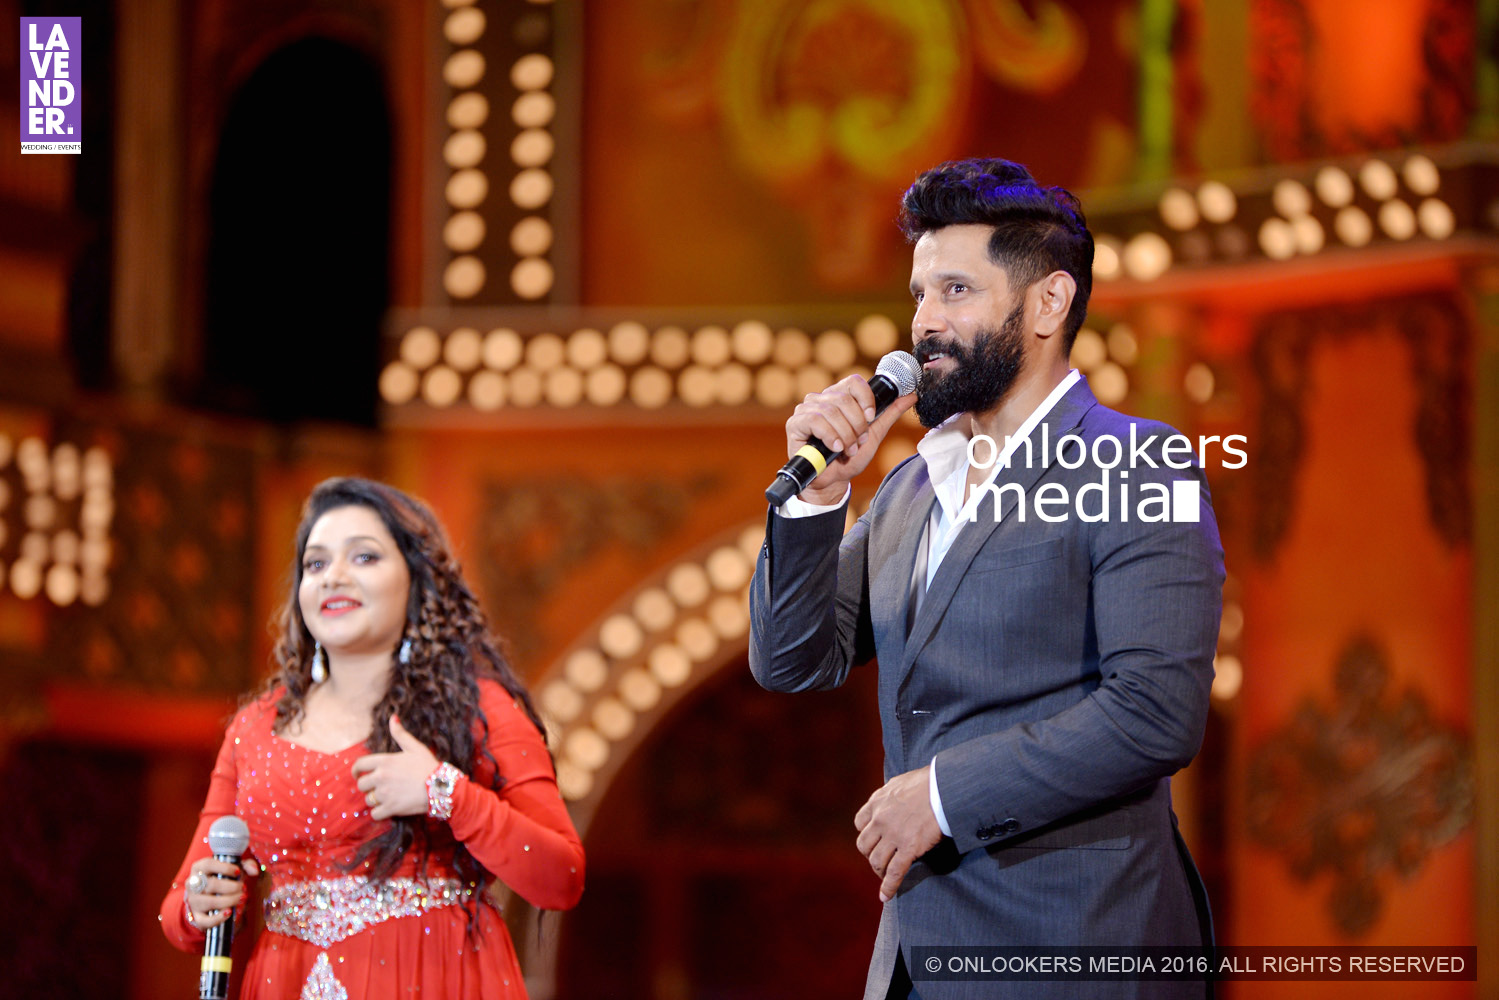 http://onlookersmedia.in/wp-content/uploads/2016/02/Vikram-at-Asianet-Film-Awards-2016-13.jpg